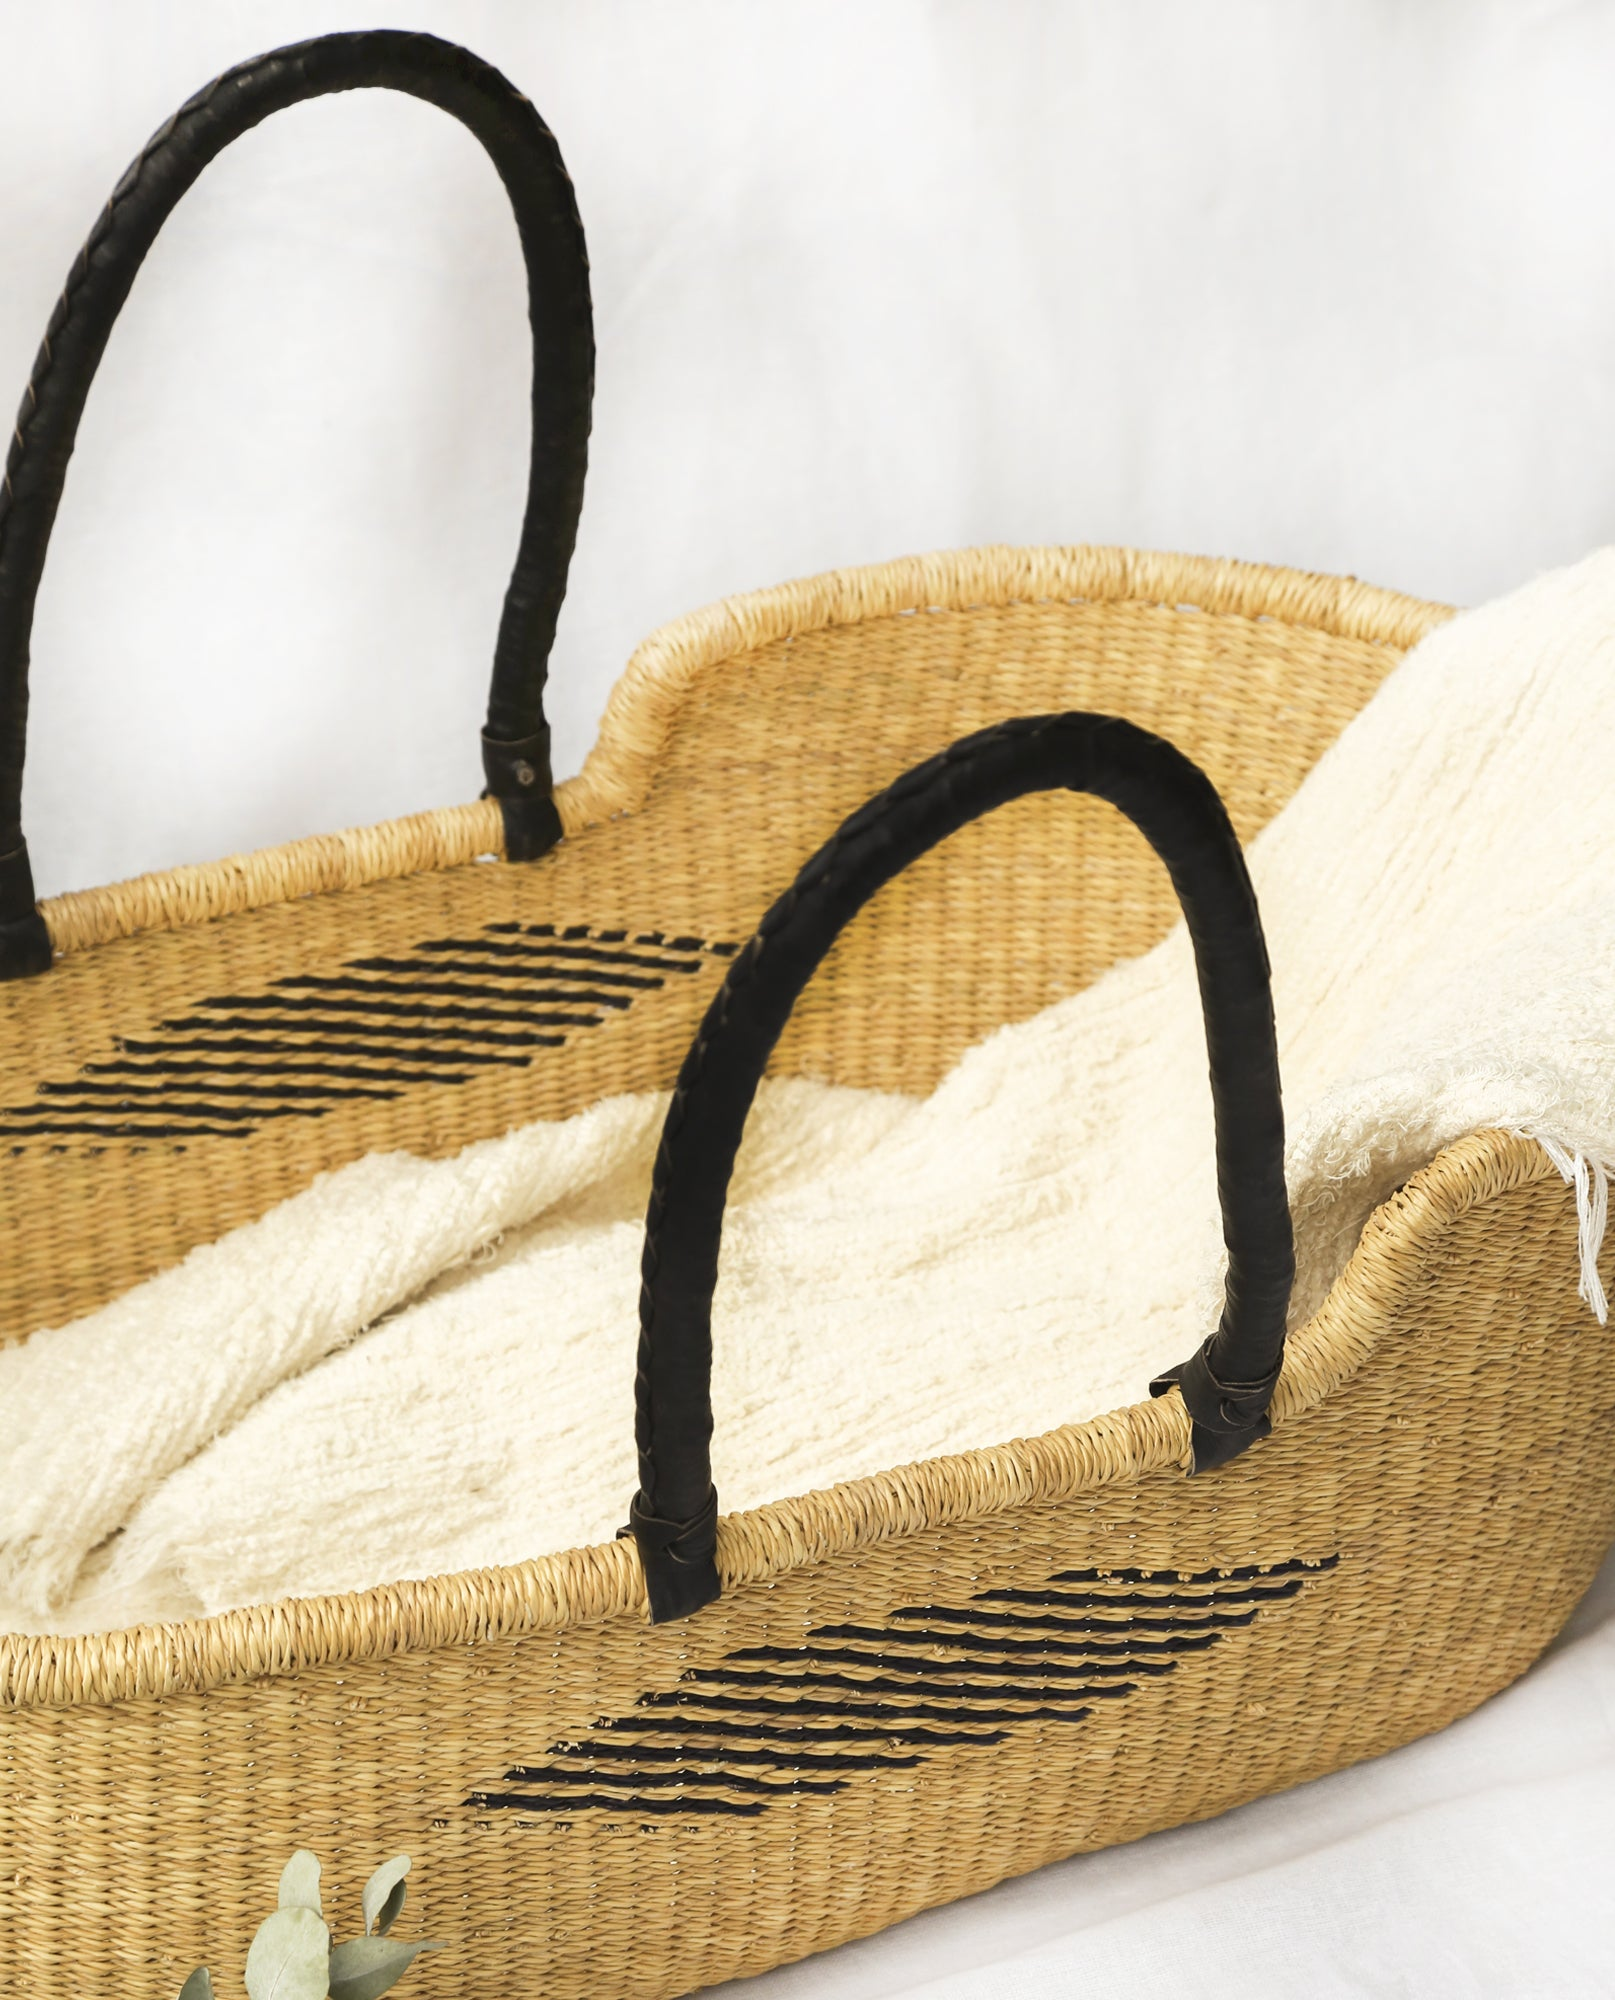 MALIKAH Handwoven Moses Basket With Leather Handles